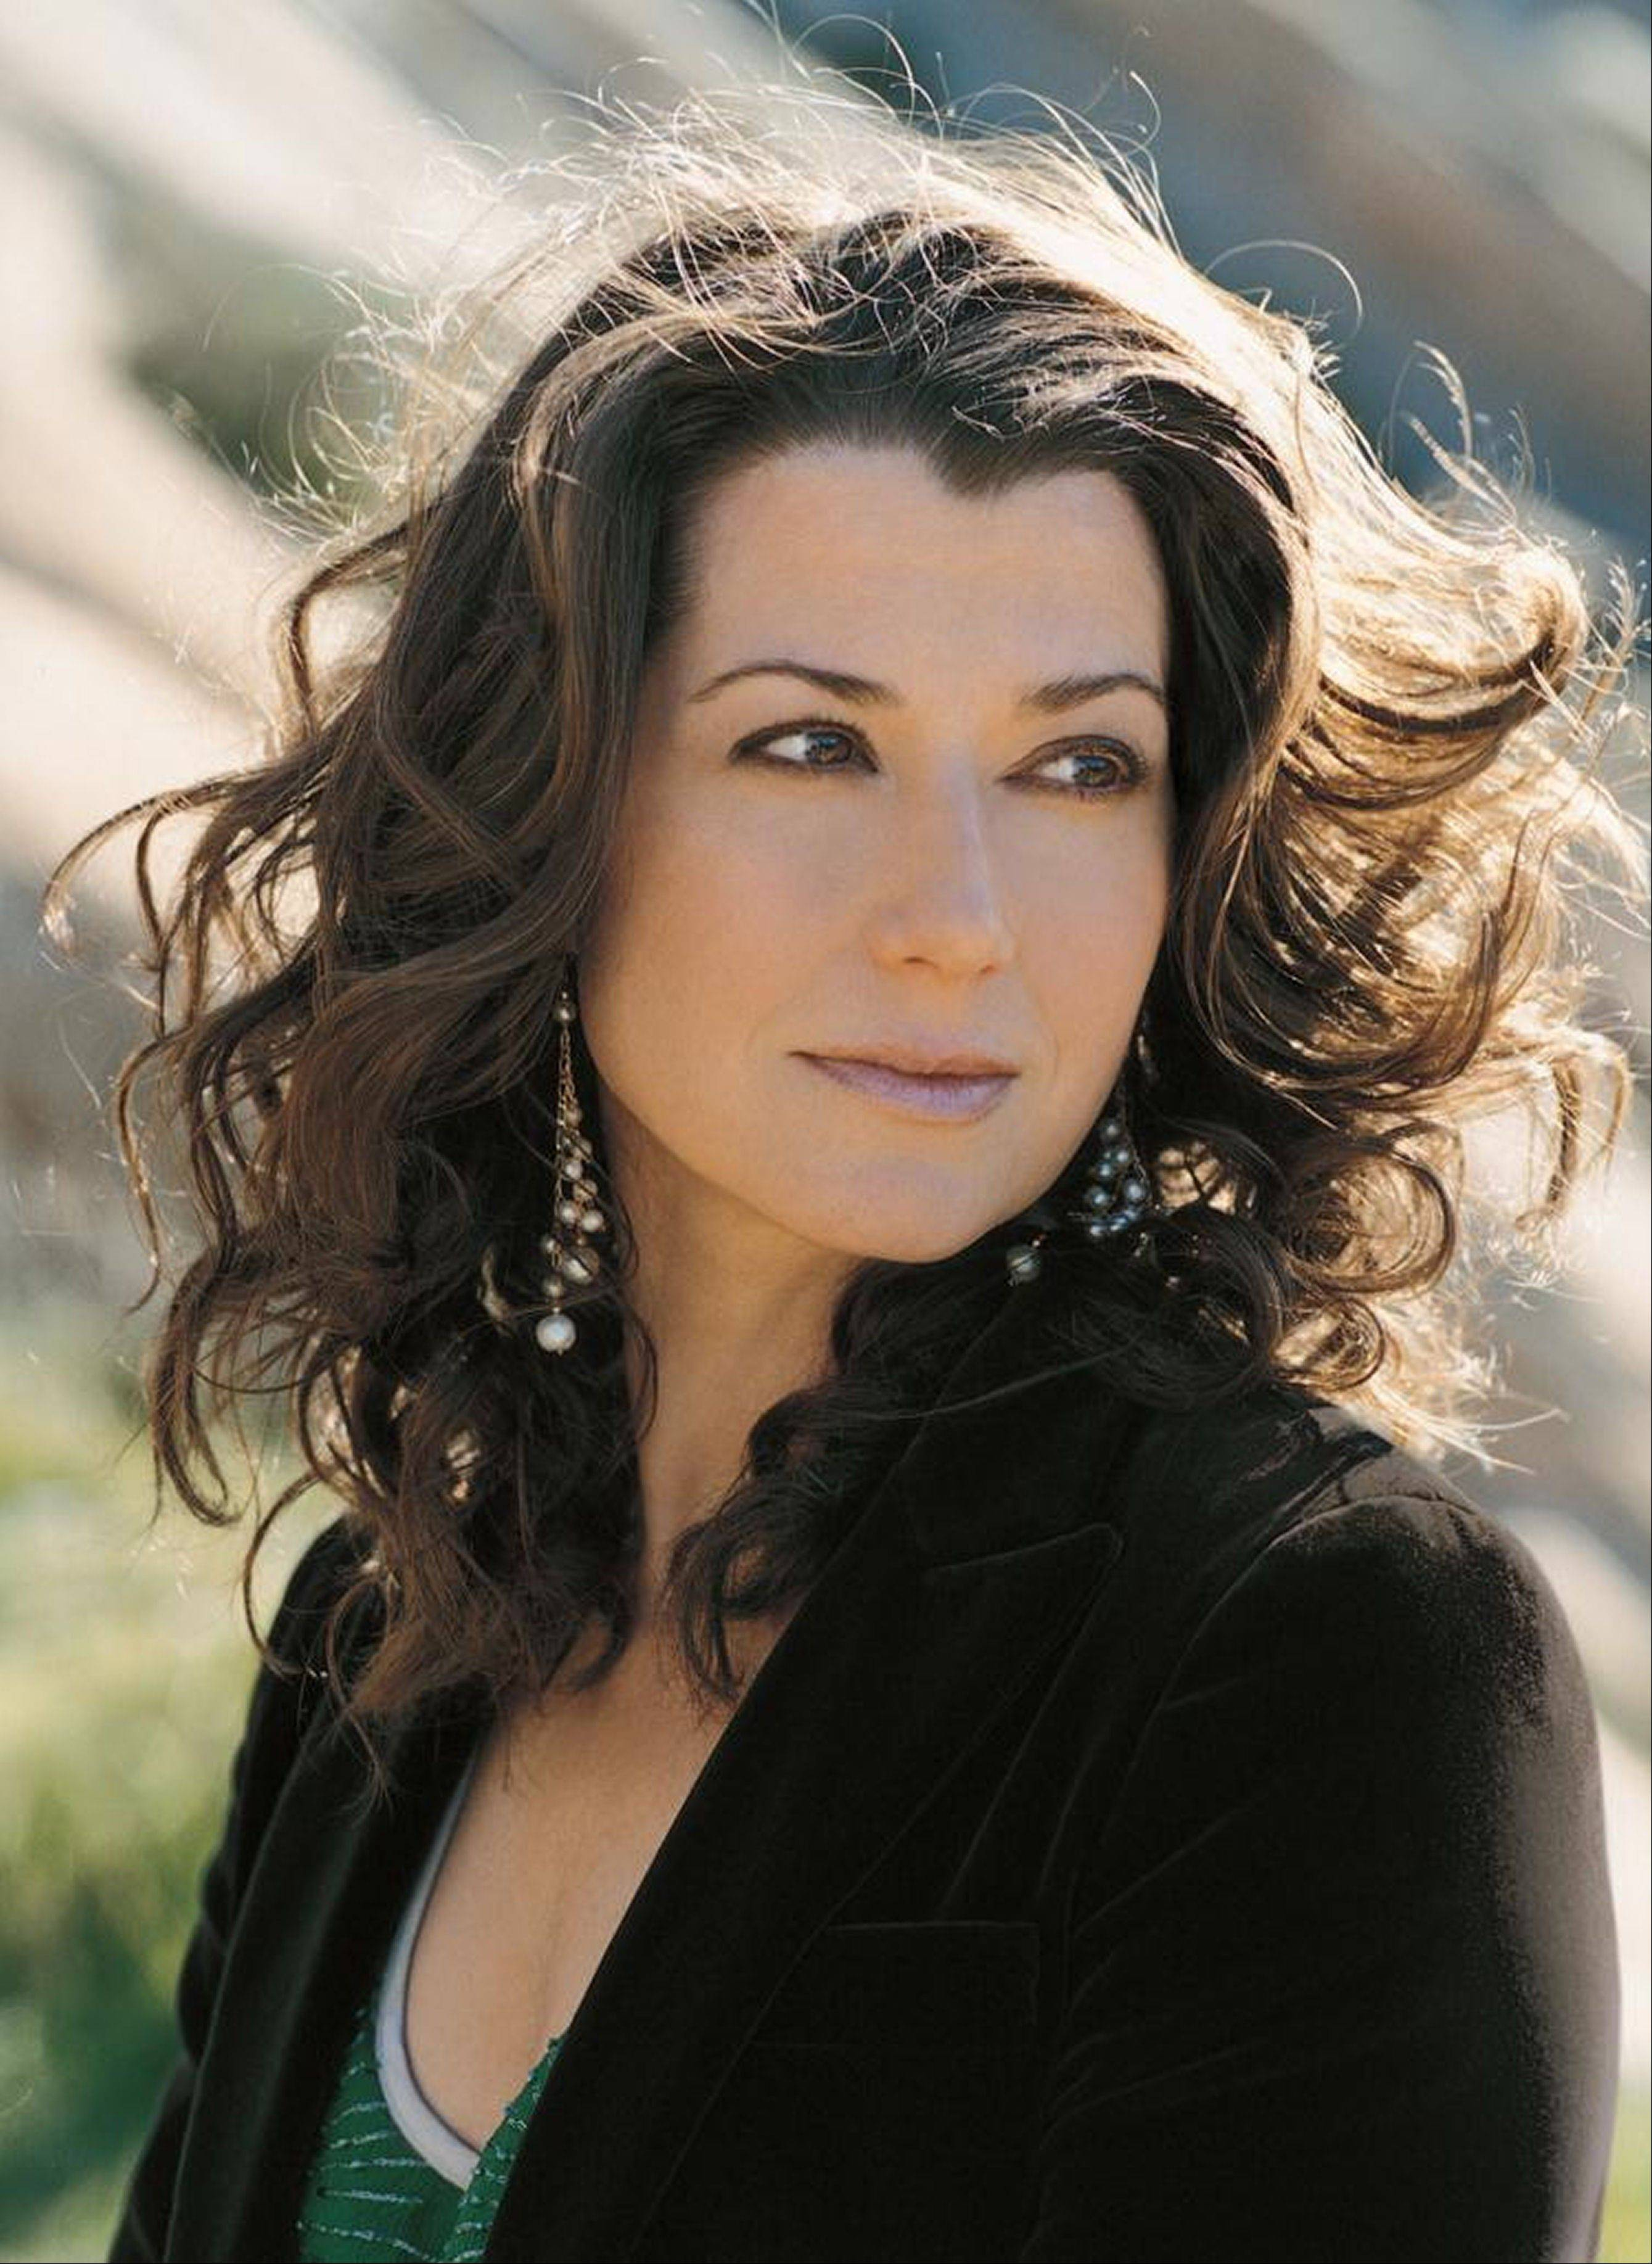 Amy Grant will play at the Raue Center for the Arts in Crystal Lake on Saturday, Oct. 6.